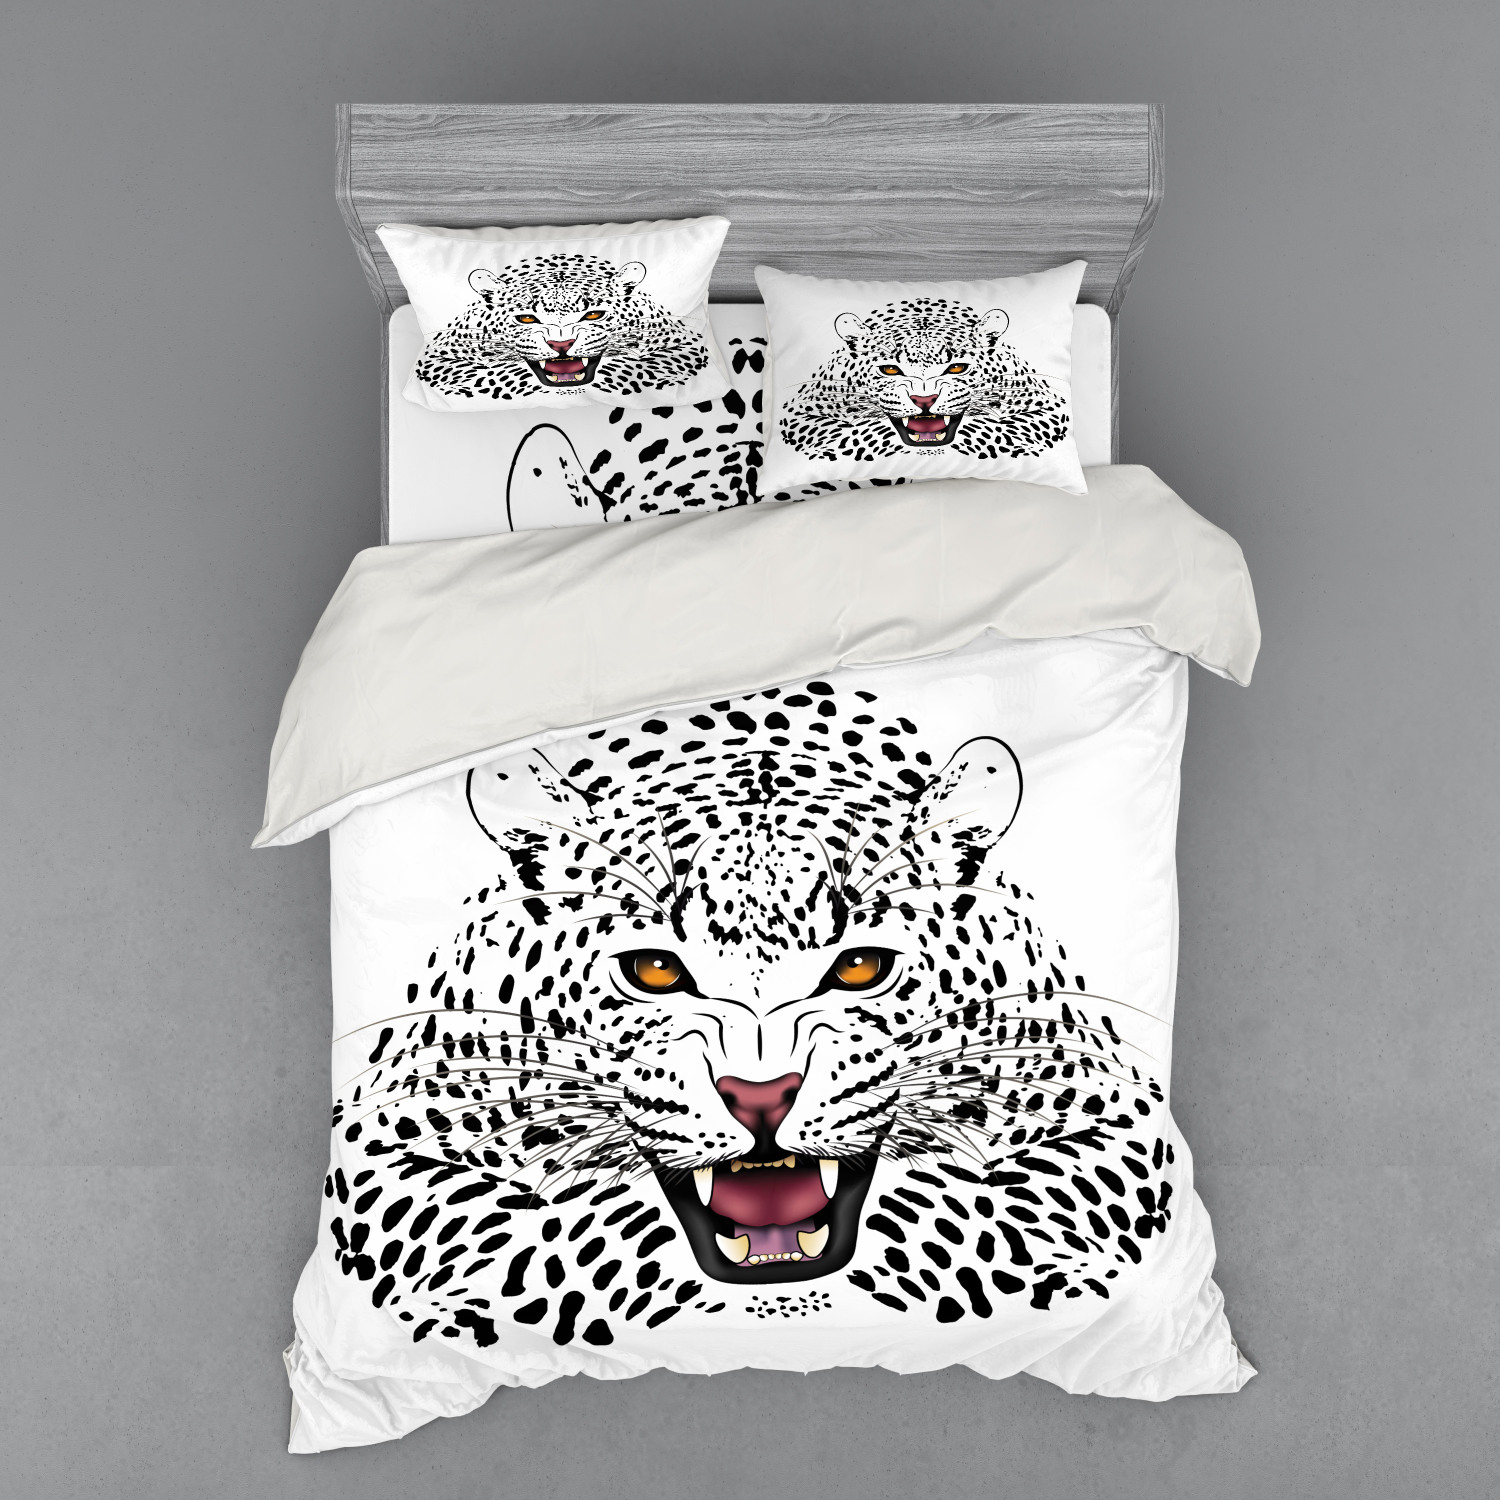 thumbnail 18 - Ambesonne Black White Art Bedding Set Duvet Cover Sham Fitted Sheet in 3 Sizes